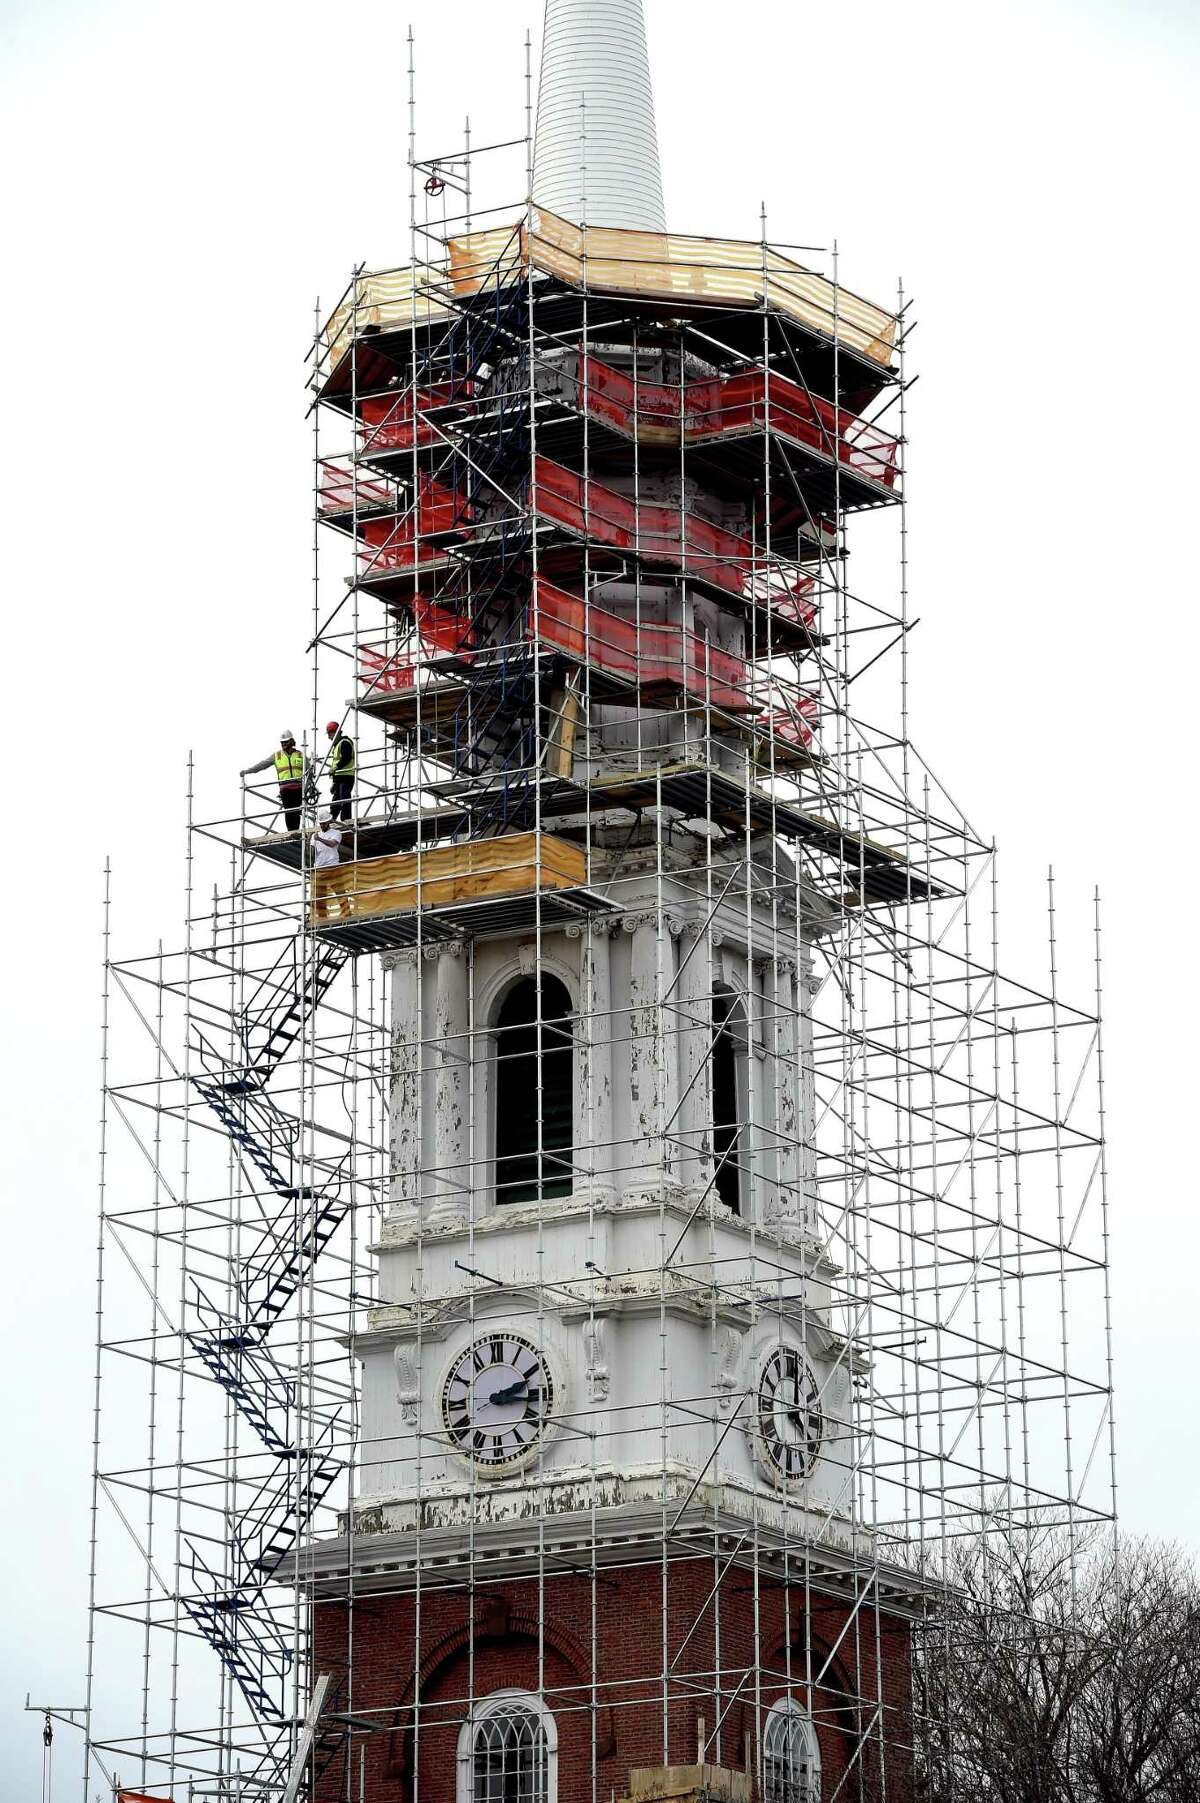 Work continues on the steeple of Center Church on the Green in New Haven on March 3, 2020.